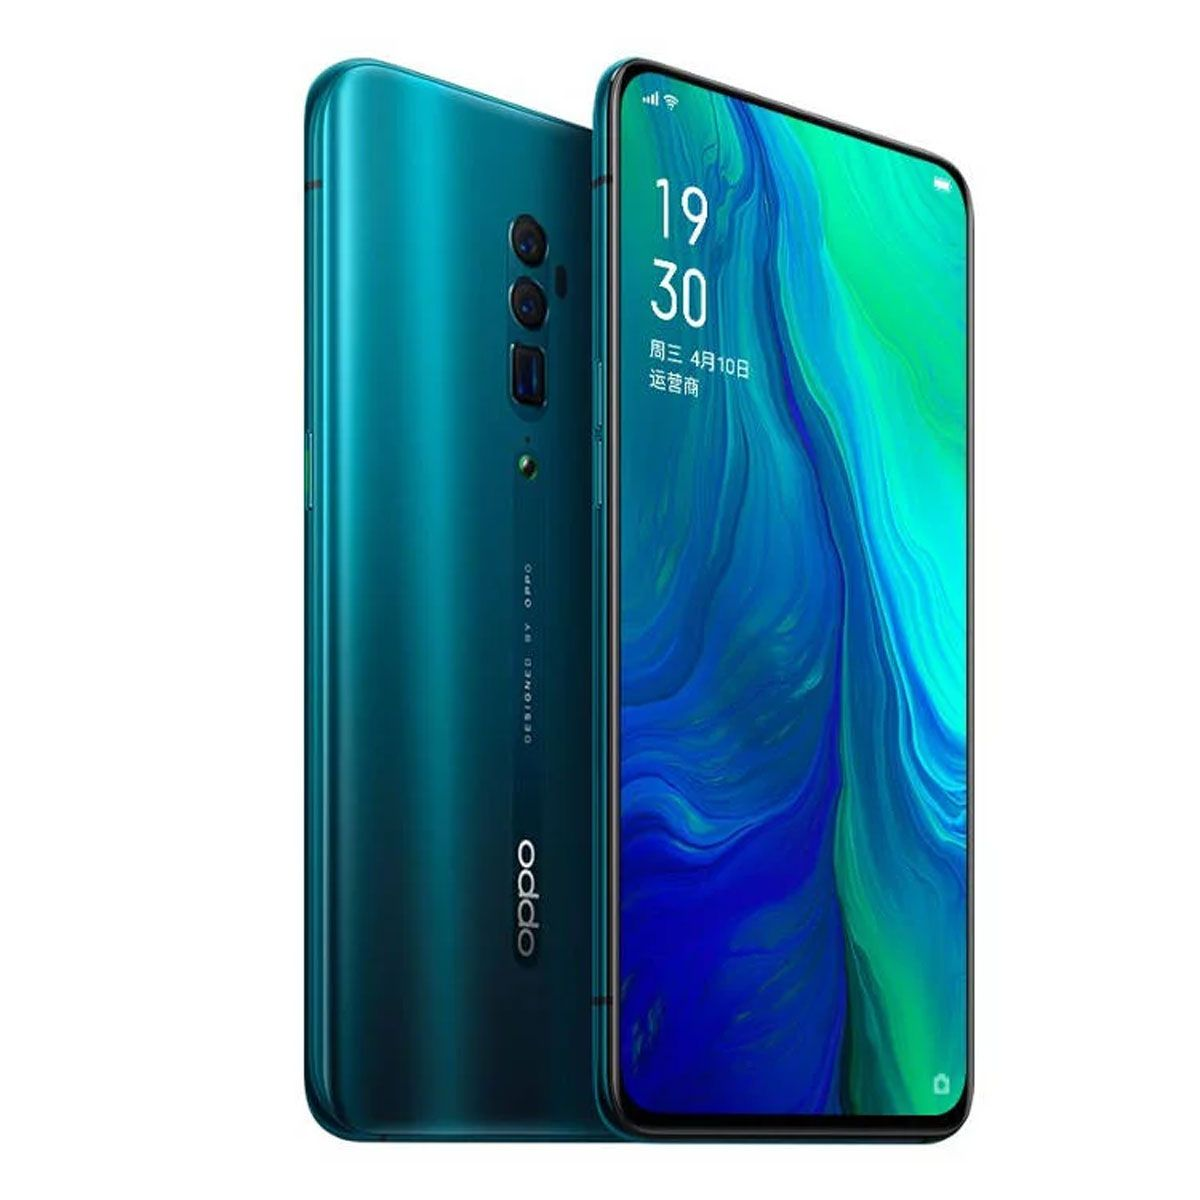 Oppo Reno Pro Price in Pakistan